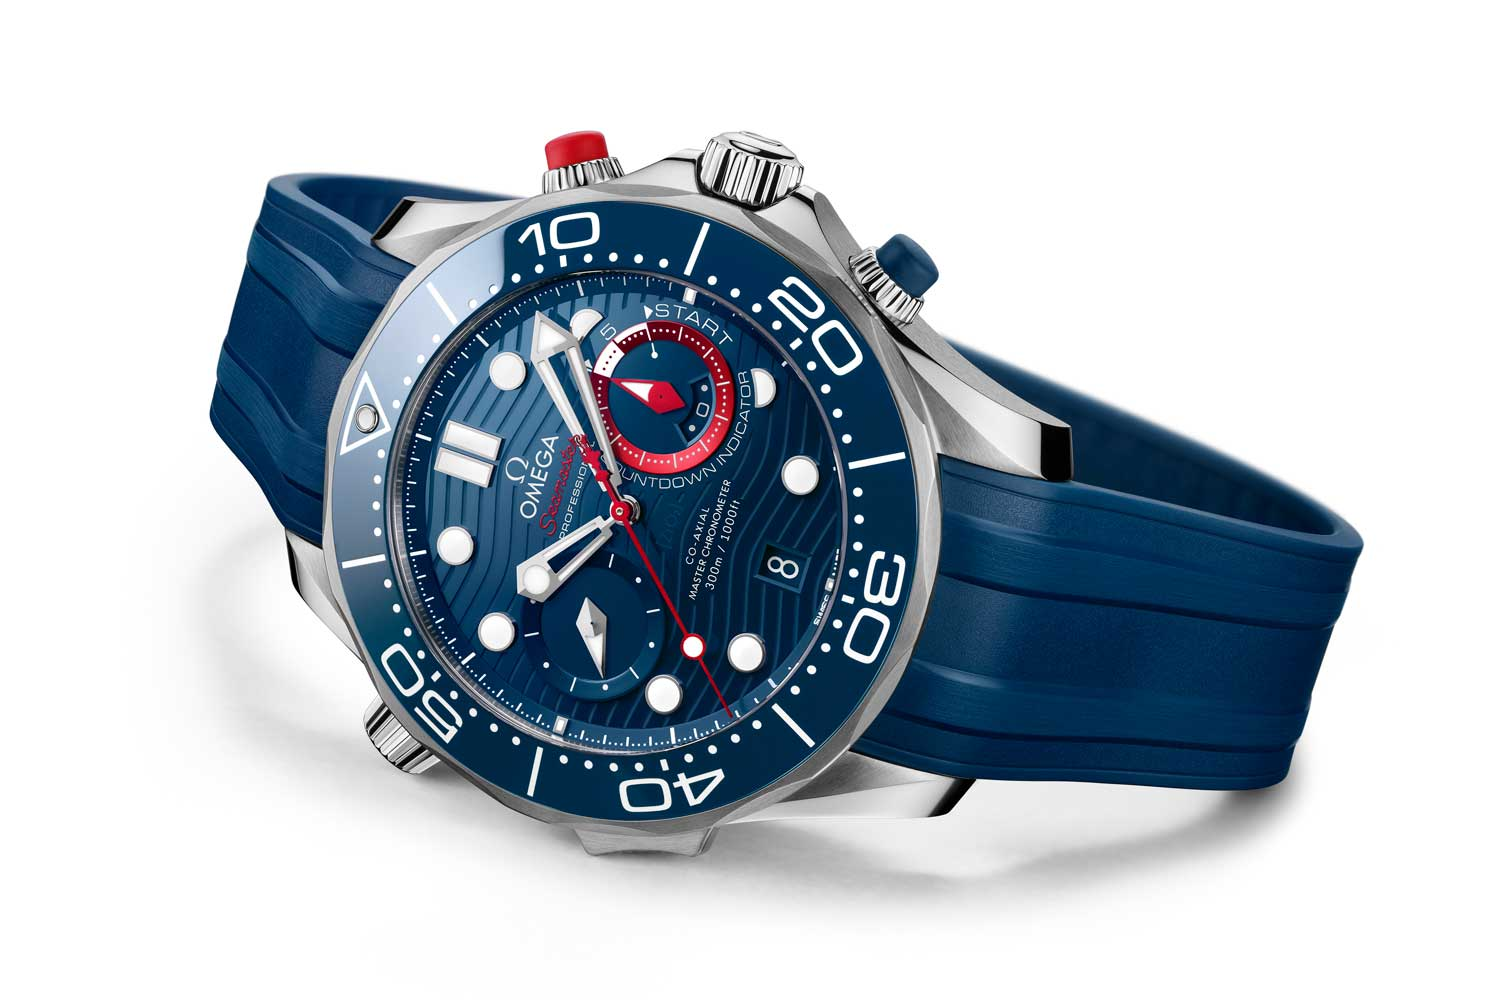 The latest model is based on the chronograph Seamaster Diver 300M released in 2019.